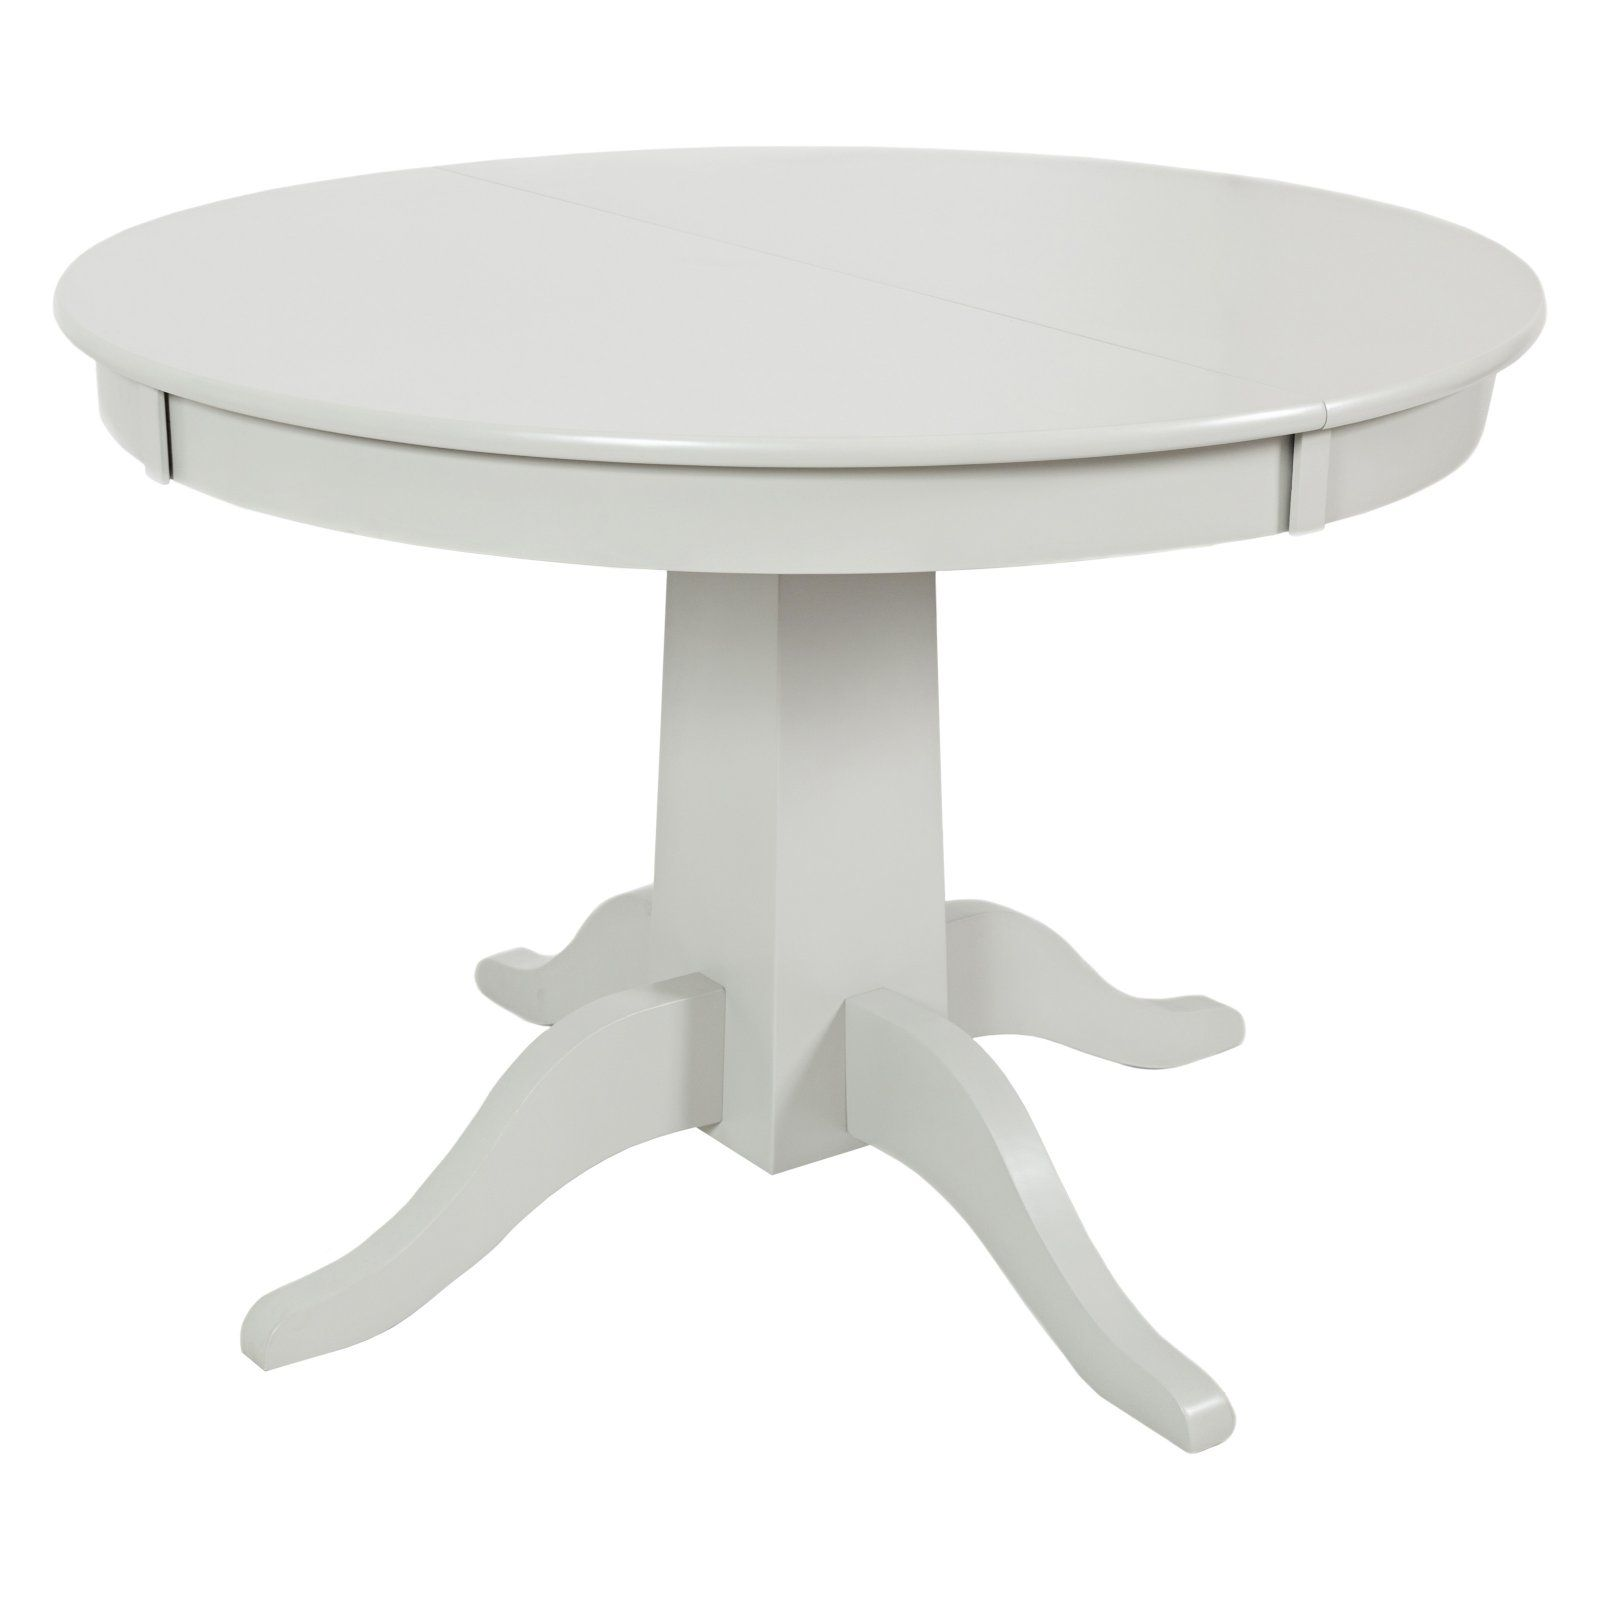 Jofran Everyday Classics 42-60 in. Round/Oval Dining Table ...